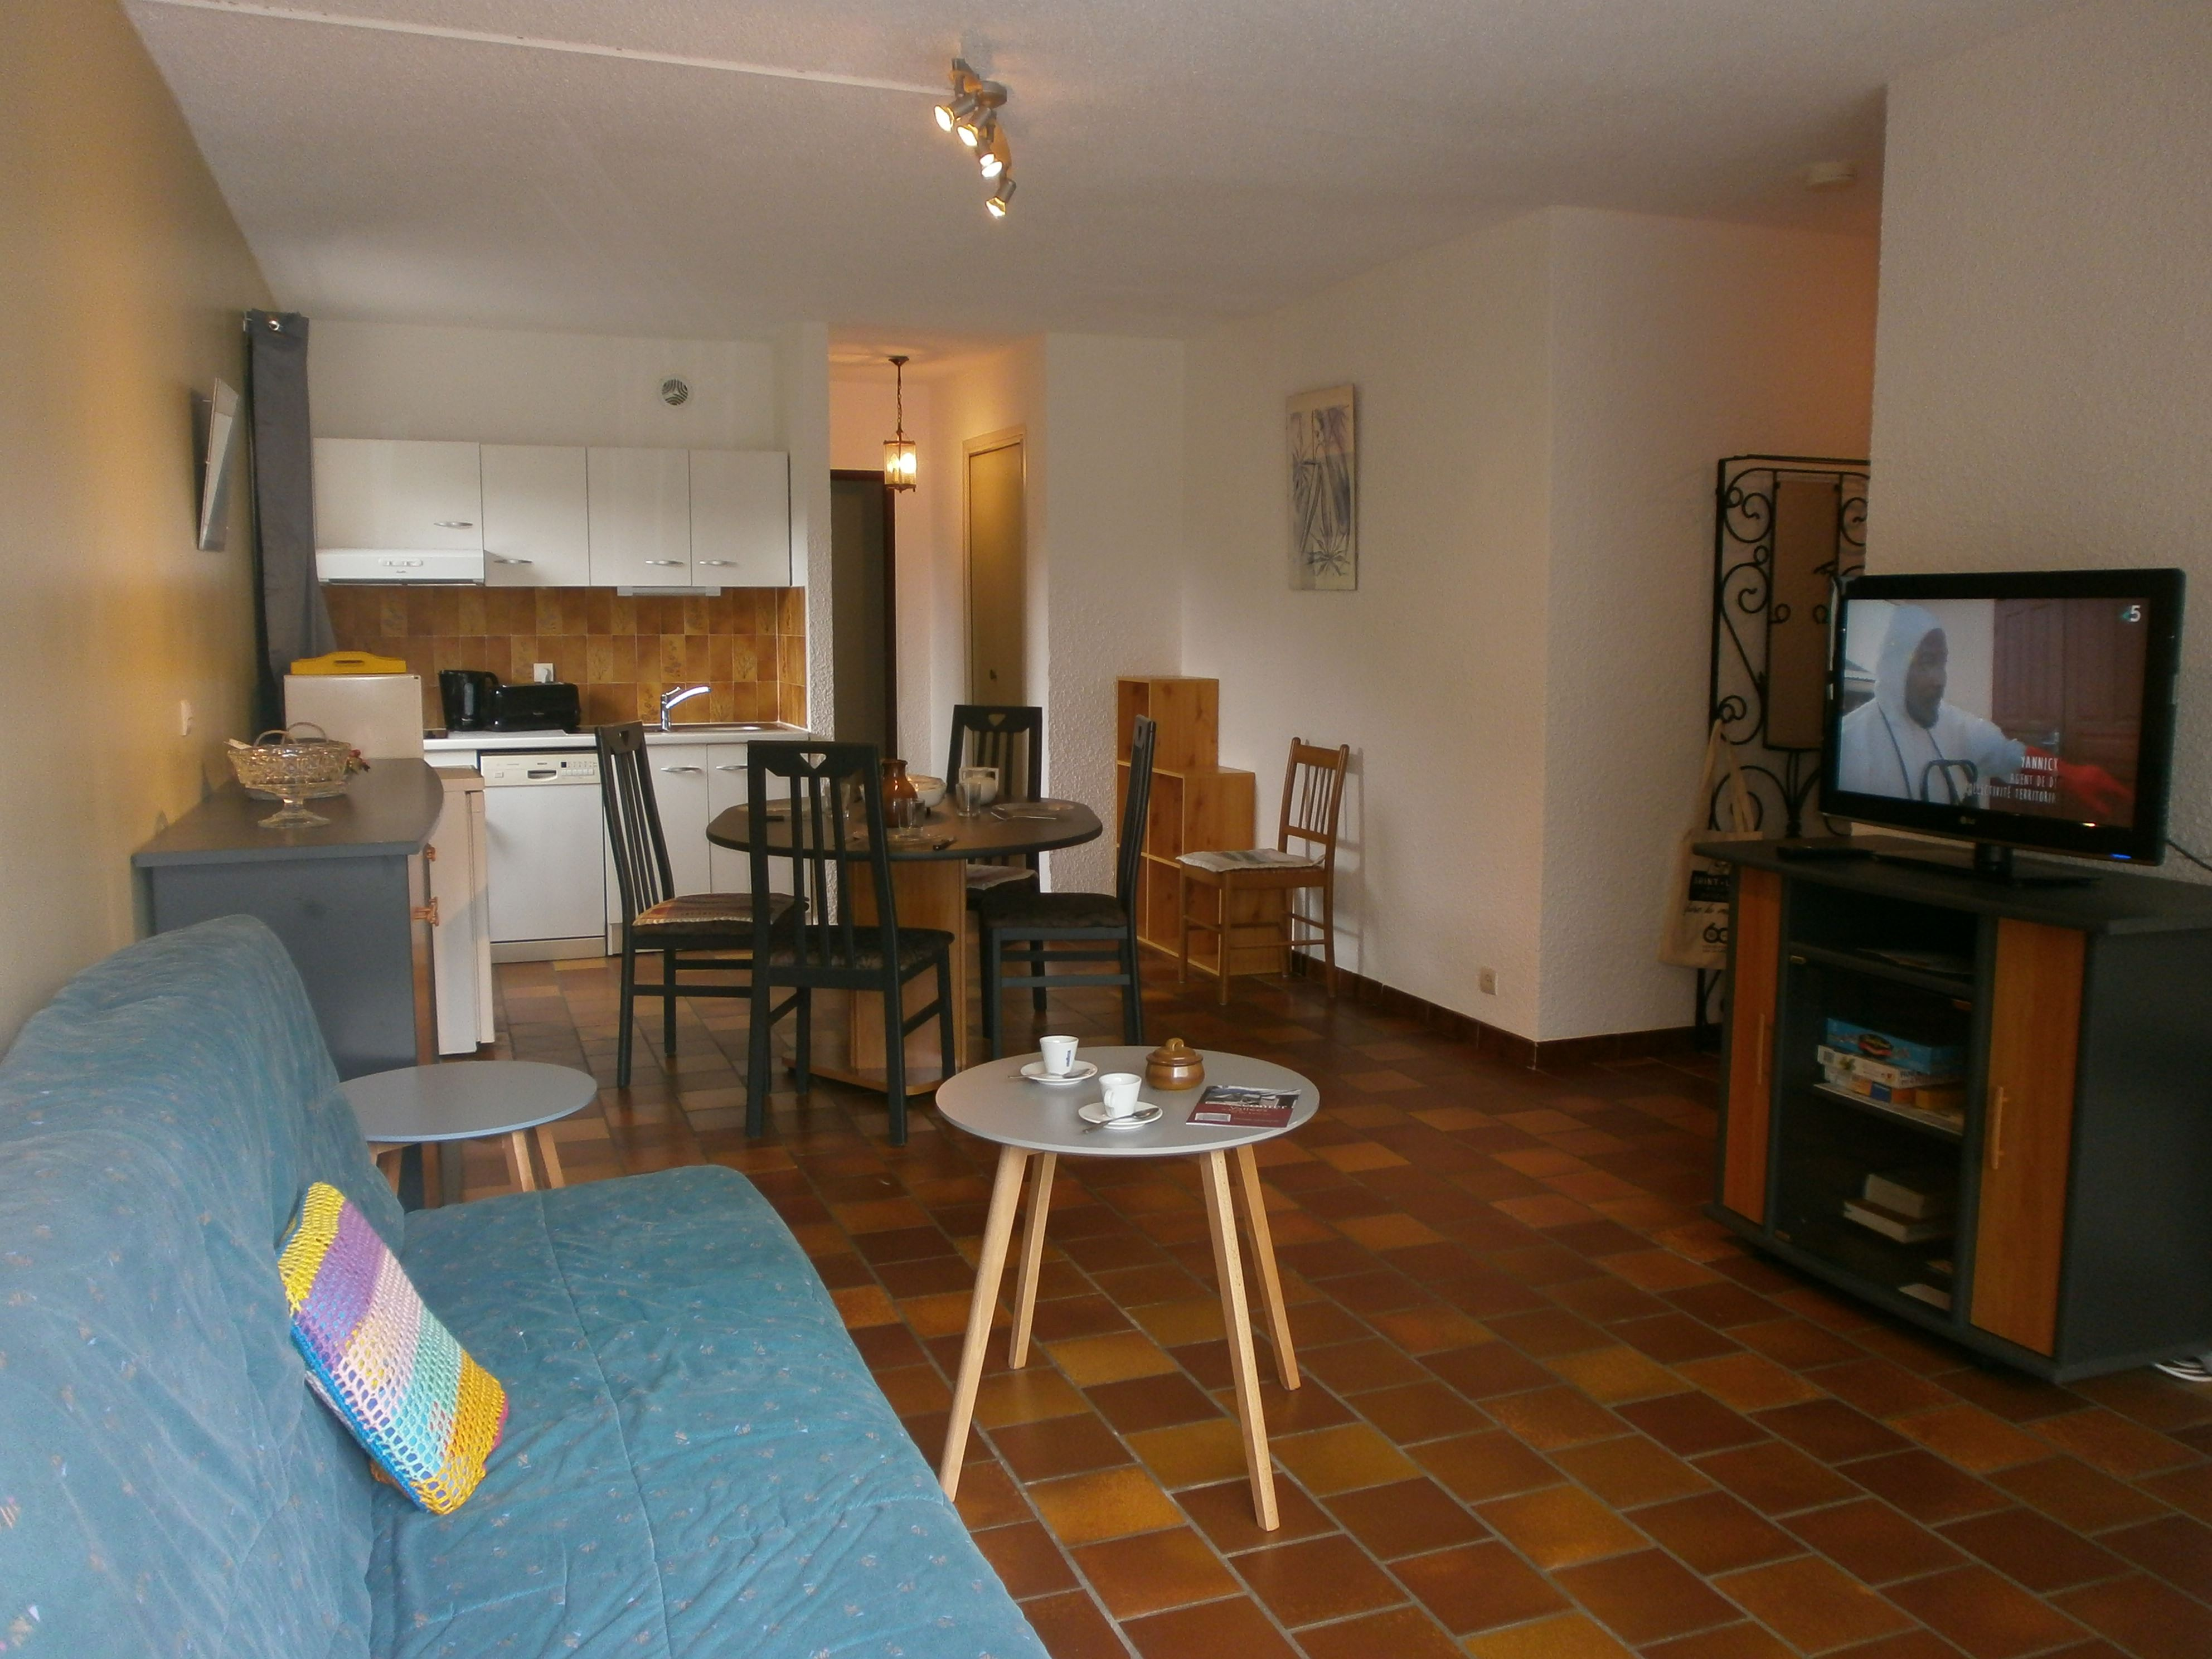 AGUT APPT 9 / 2 ROOMS 6 PERSONS